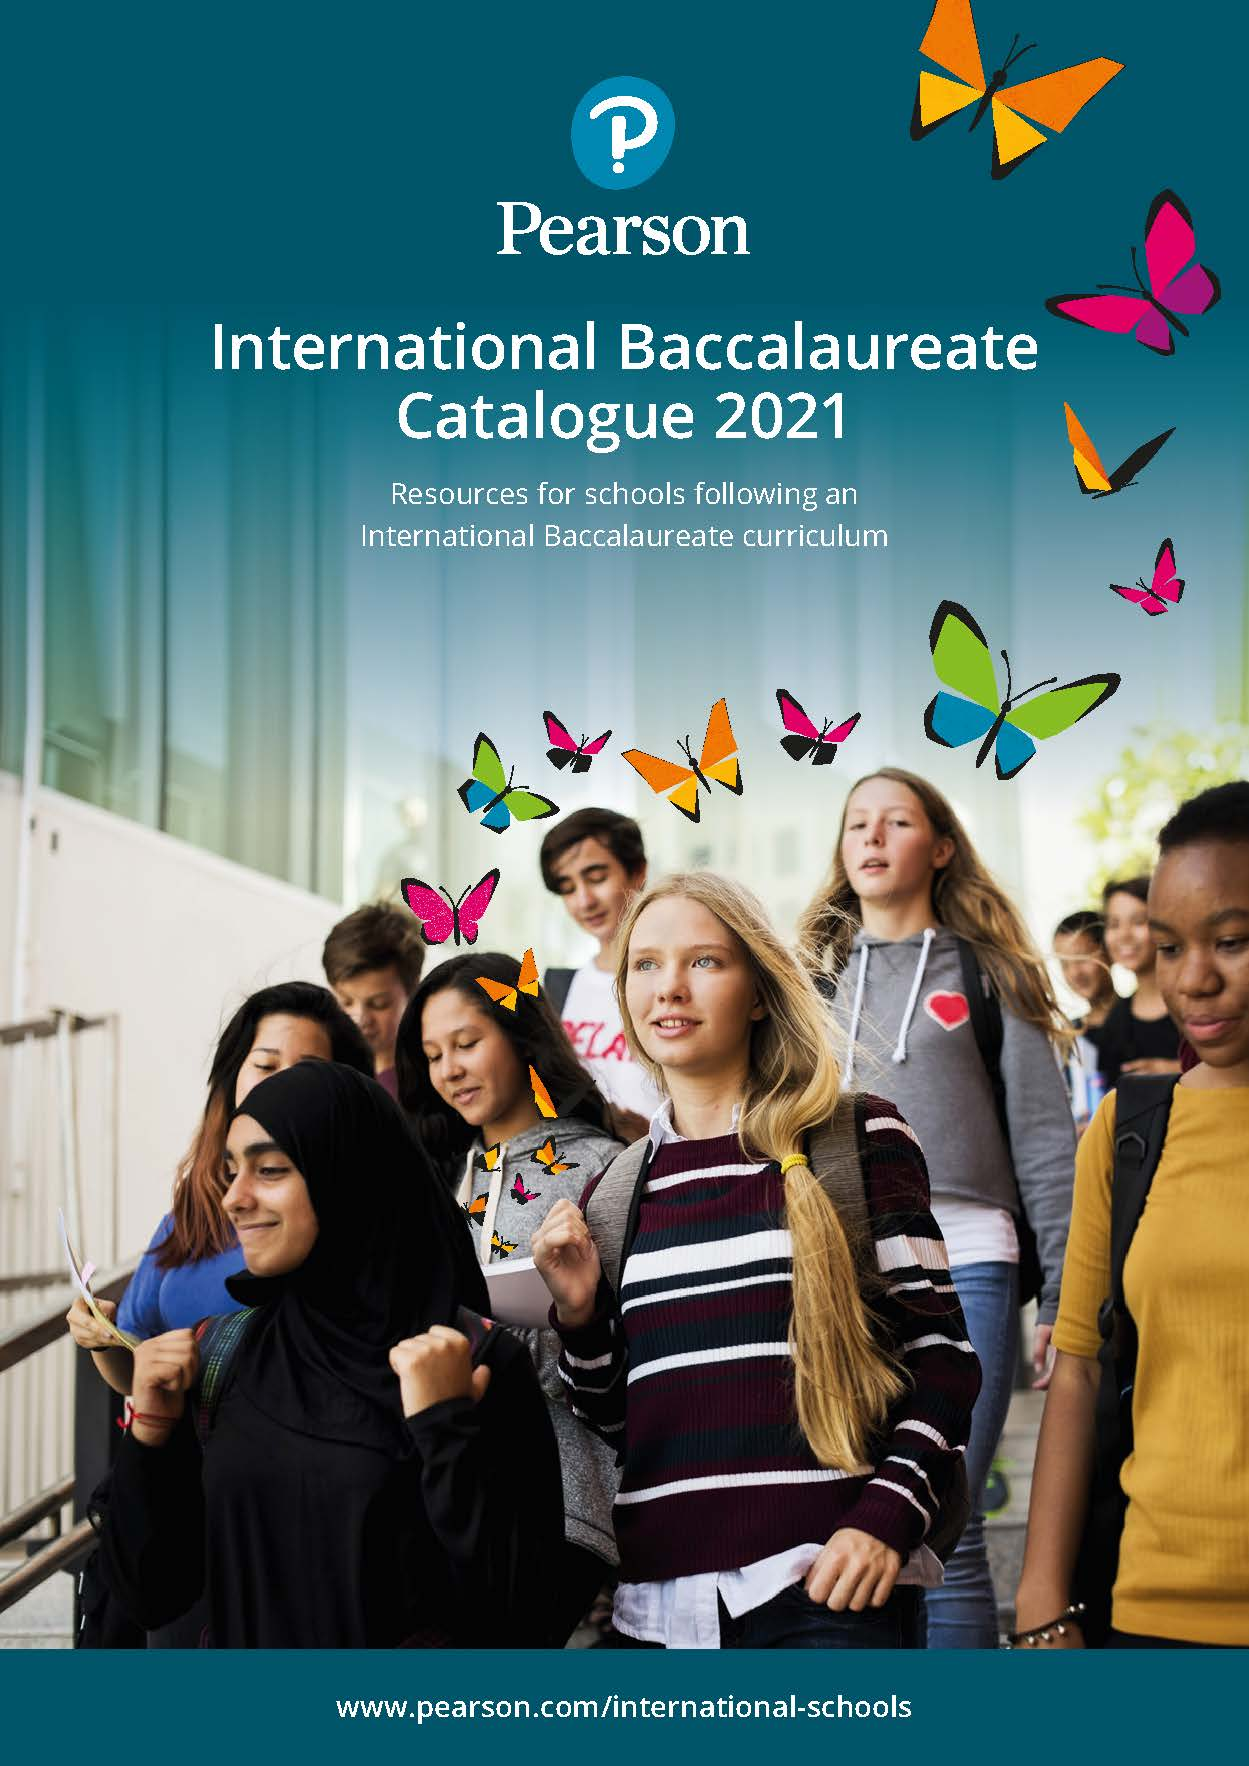 Download the international baccalaureate catalogue